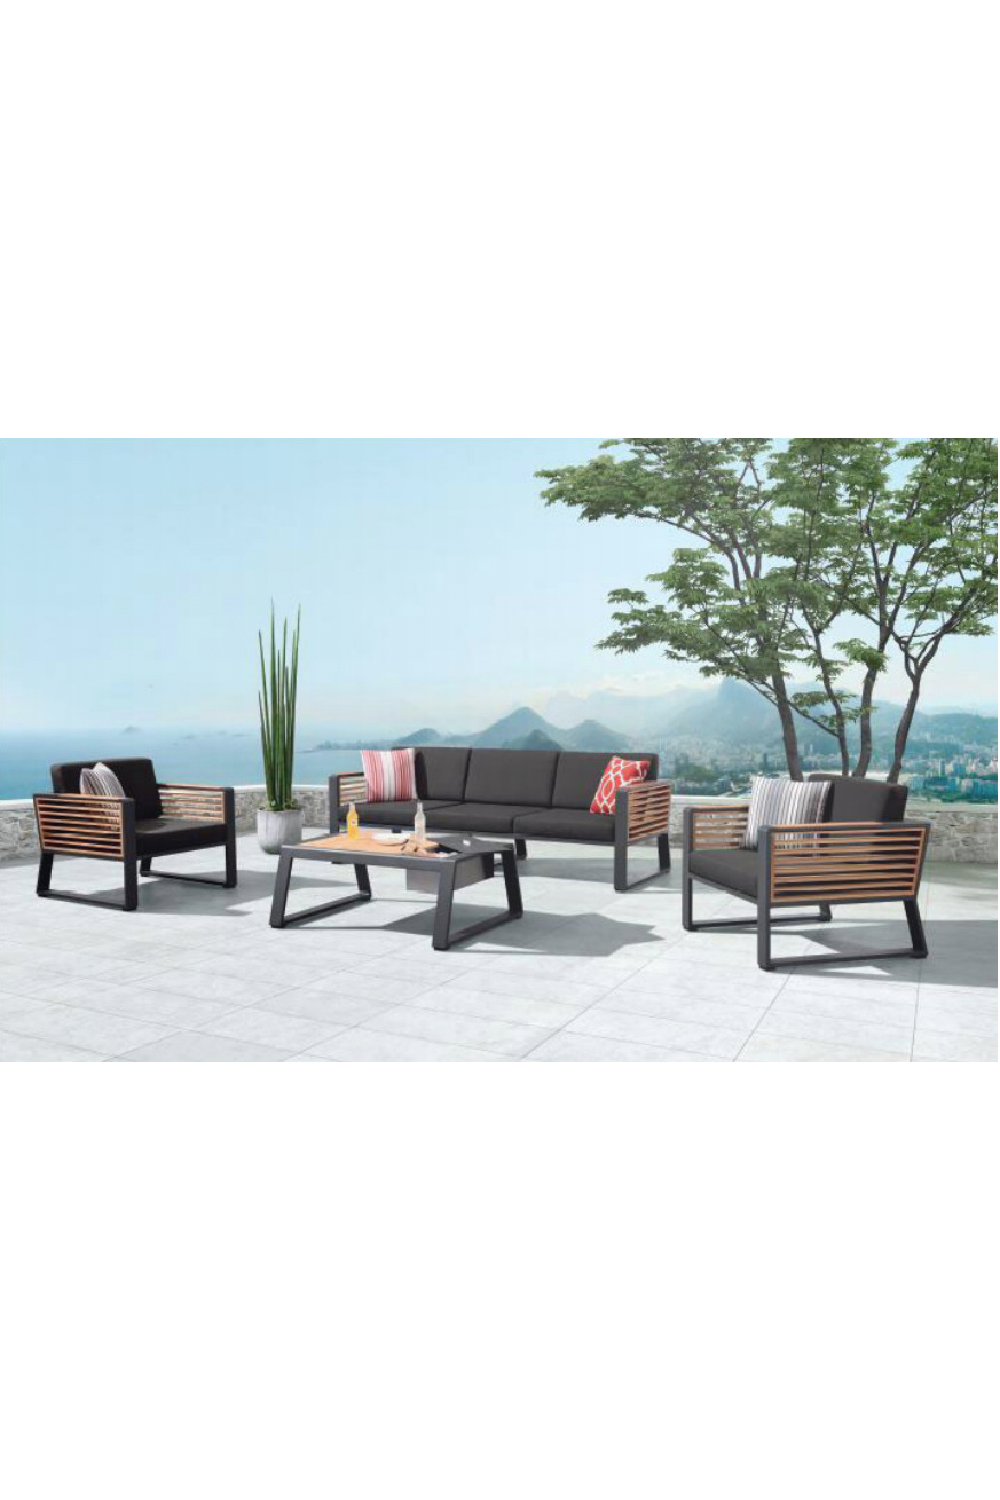 3-Seater Lounge Outdoor Set | Higold New York